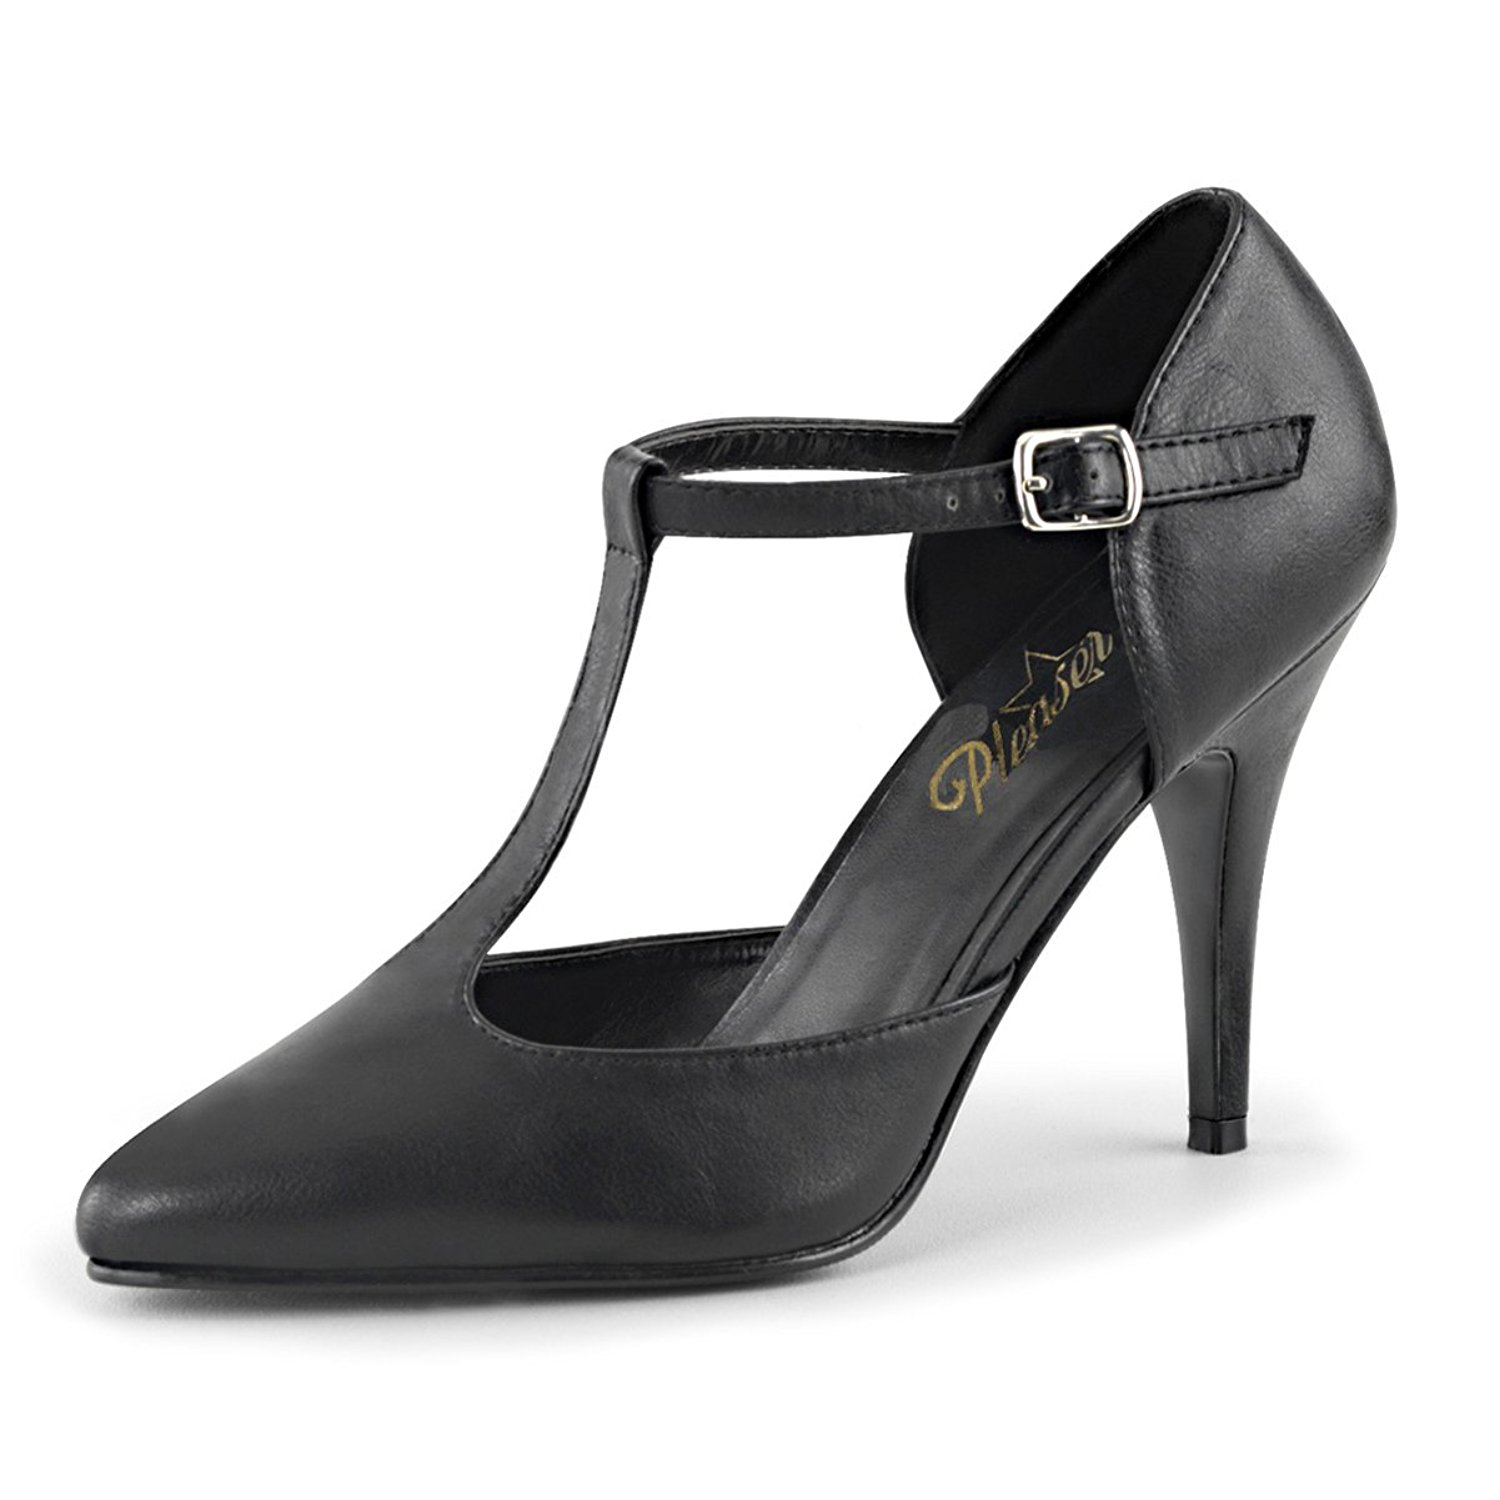 6e9ae3507aa5 Get Quotations · Summitfashions Womens Black T Strap Heels Classic D Orsay  Style Pump Matte 4 Inch Heels